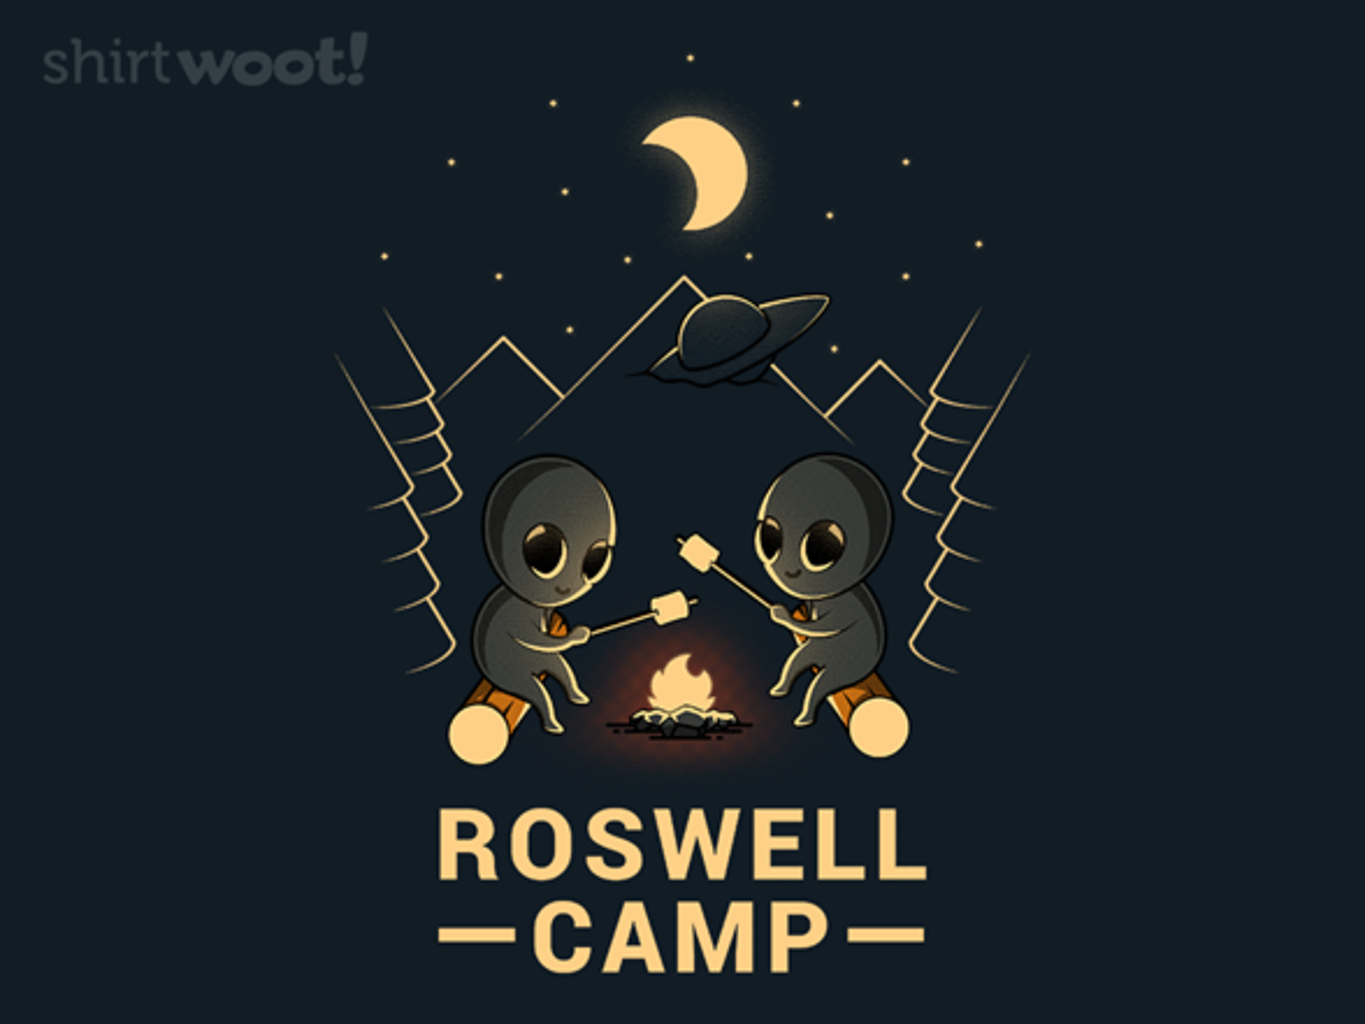 Woot!: Roswell Camp